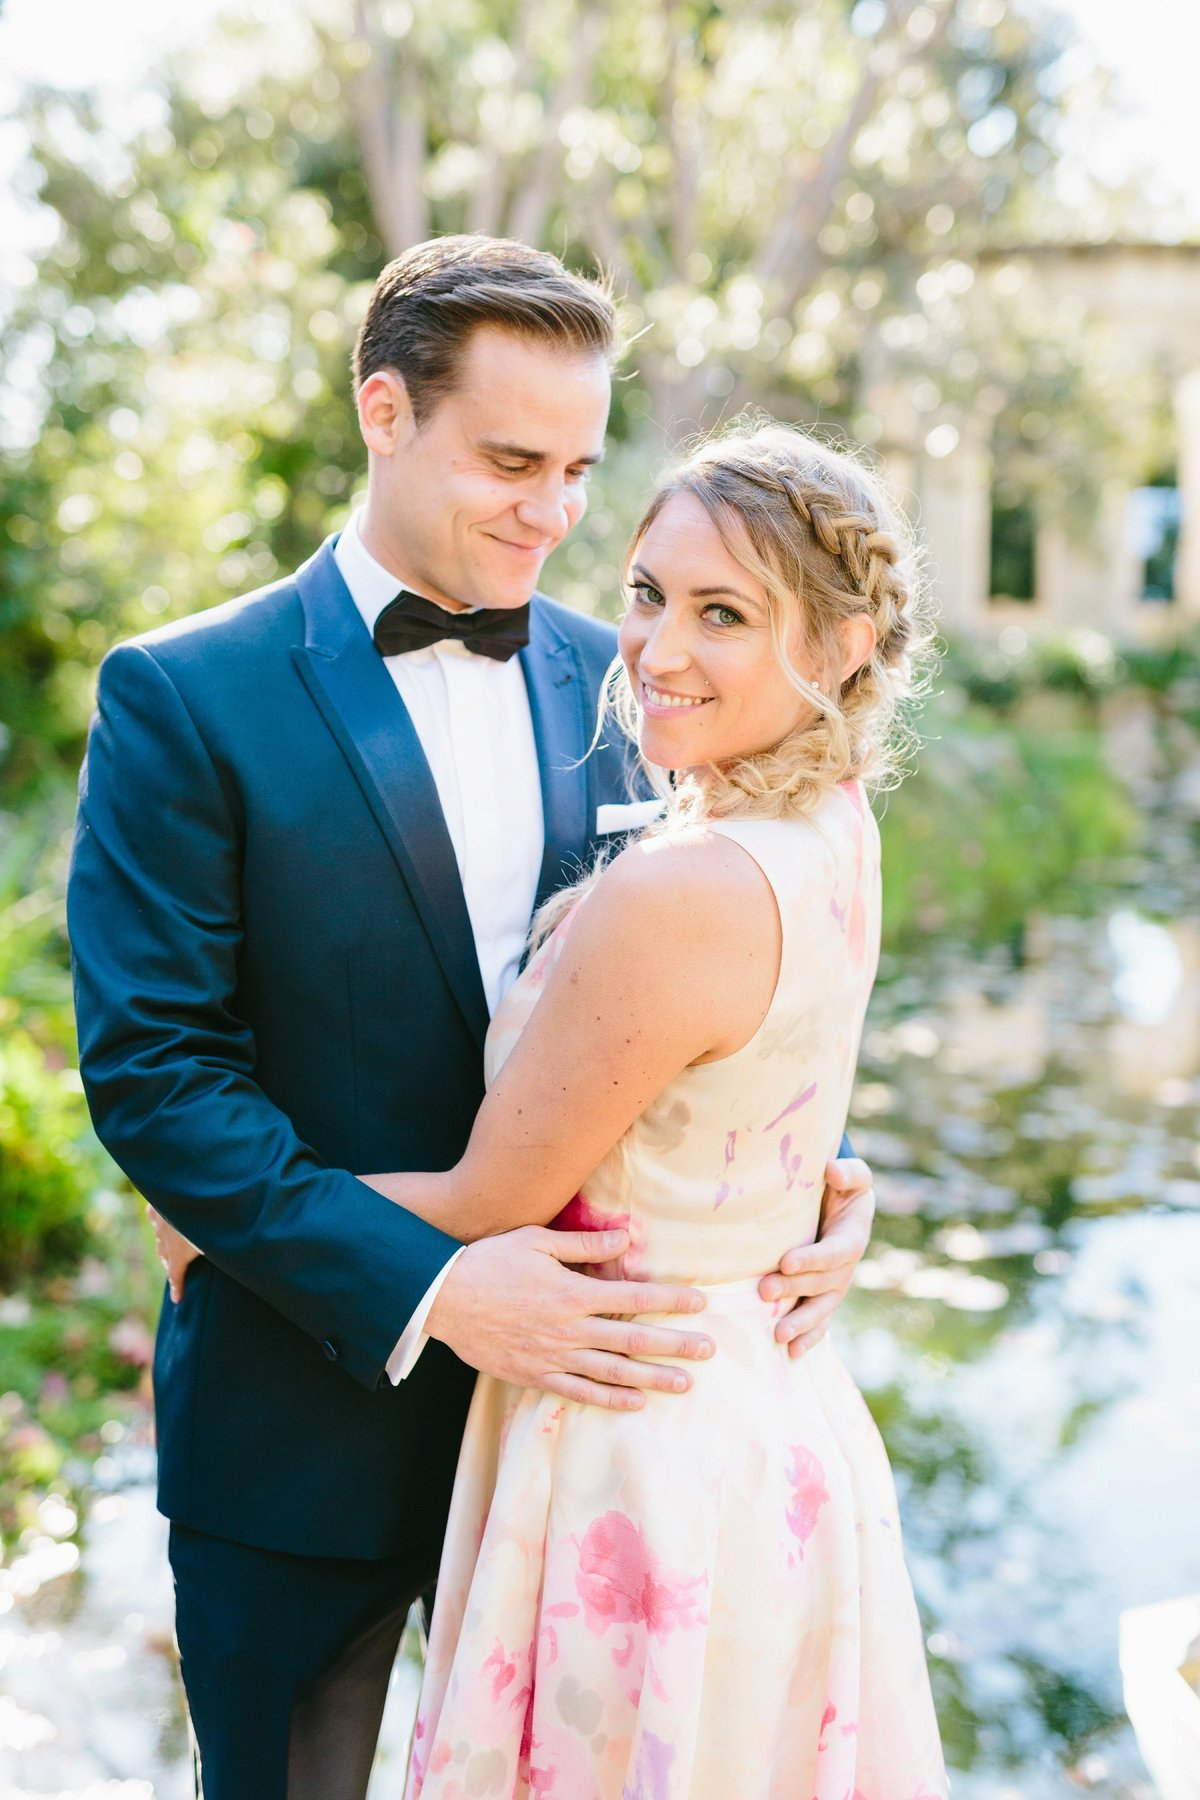 Best California Wedding Photographer-Jodee Debes Photography-223